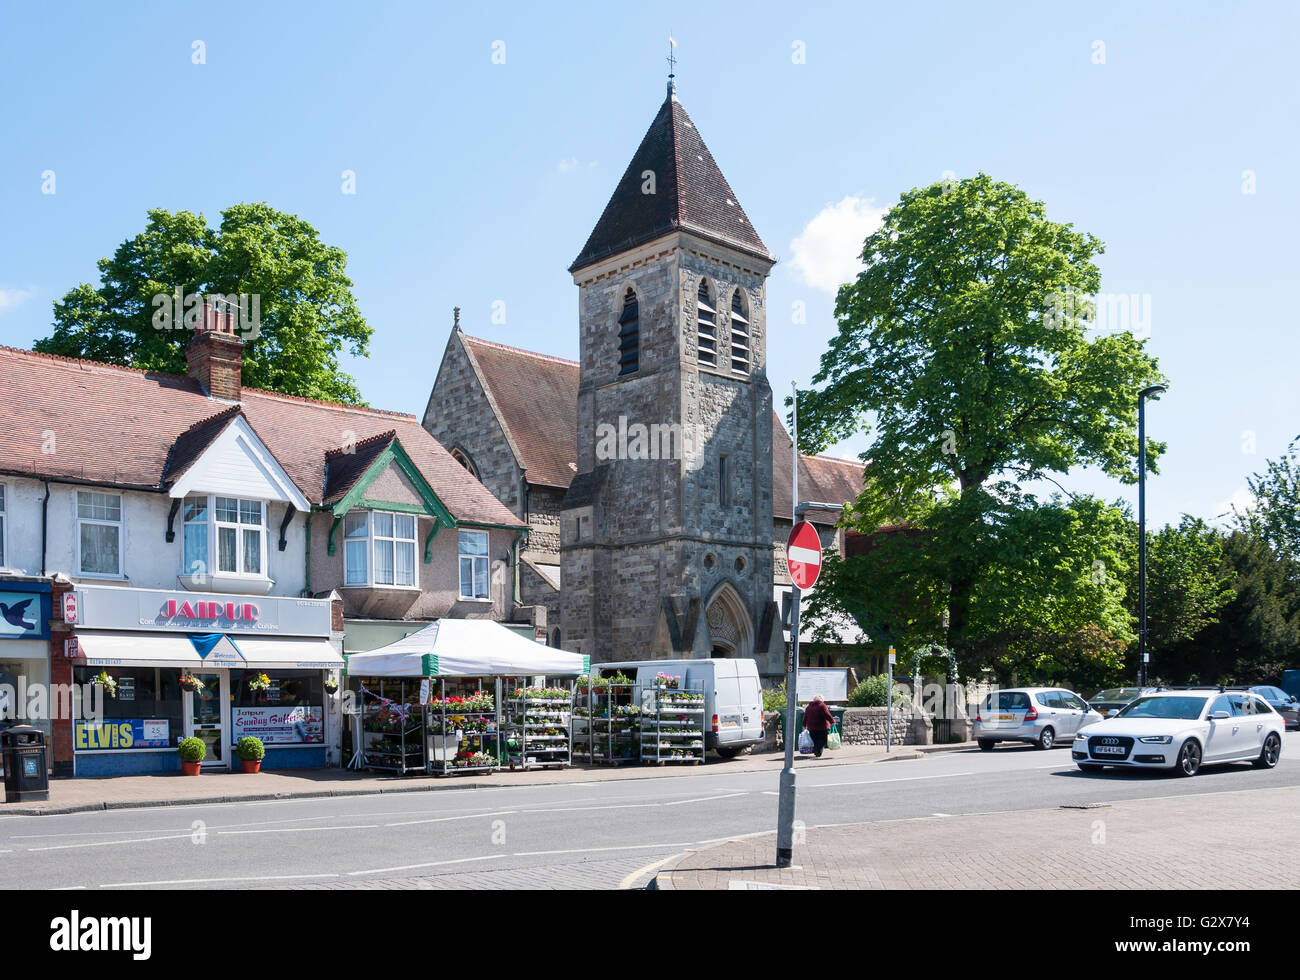 St Matthew's Church and shops, Church Road, Ashford, Surrey, England, United Kingdom - Stock Image